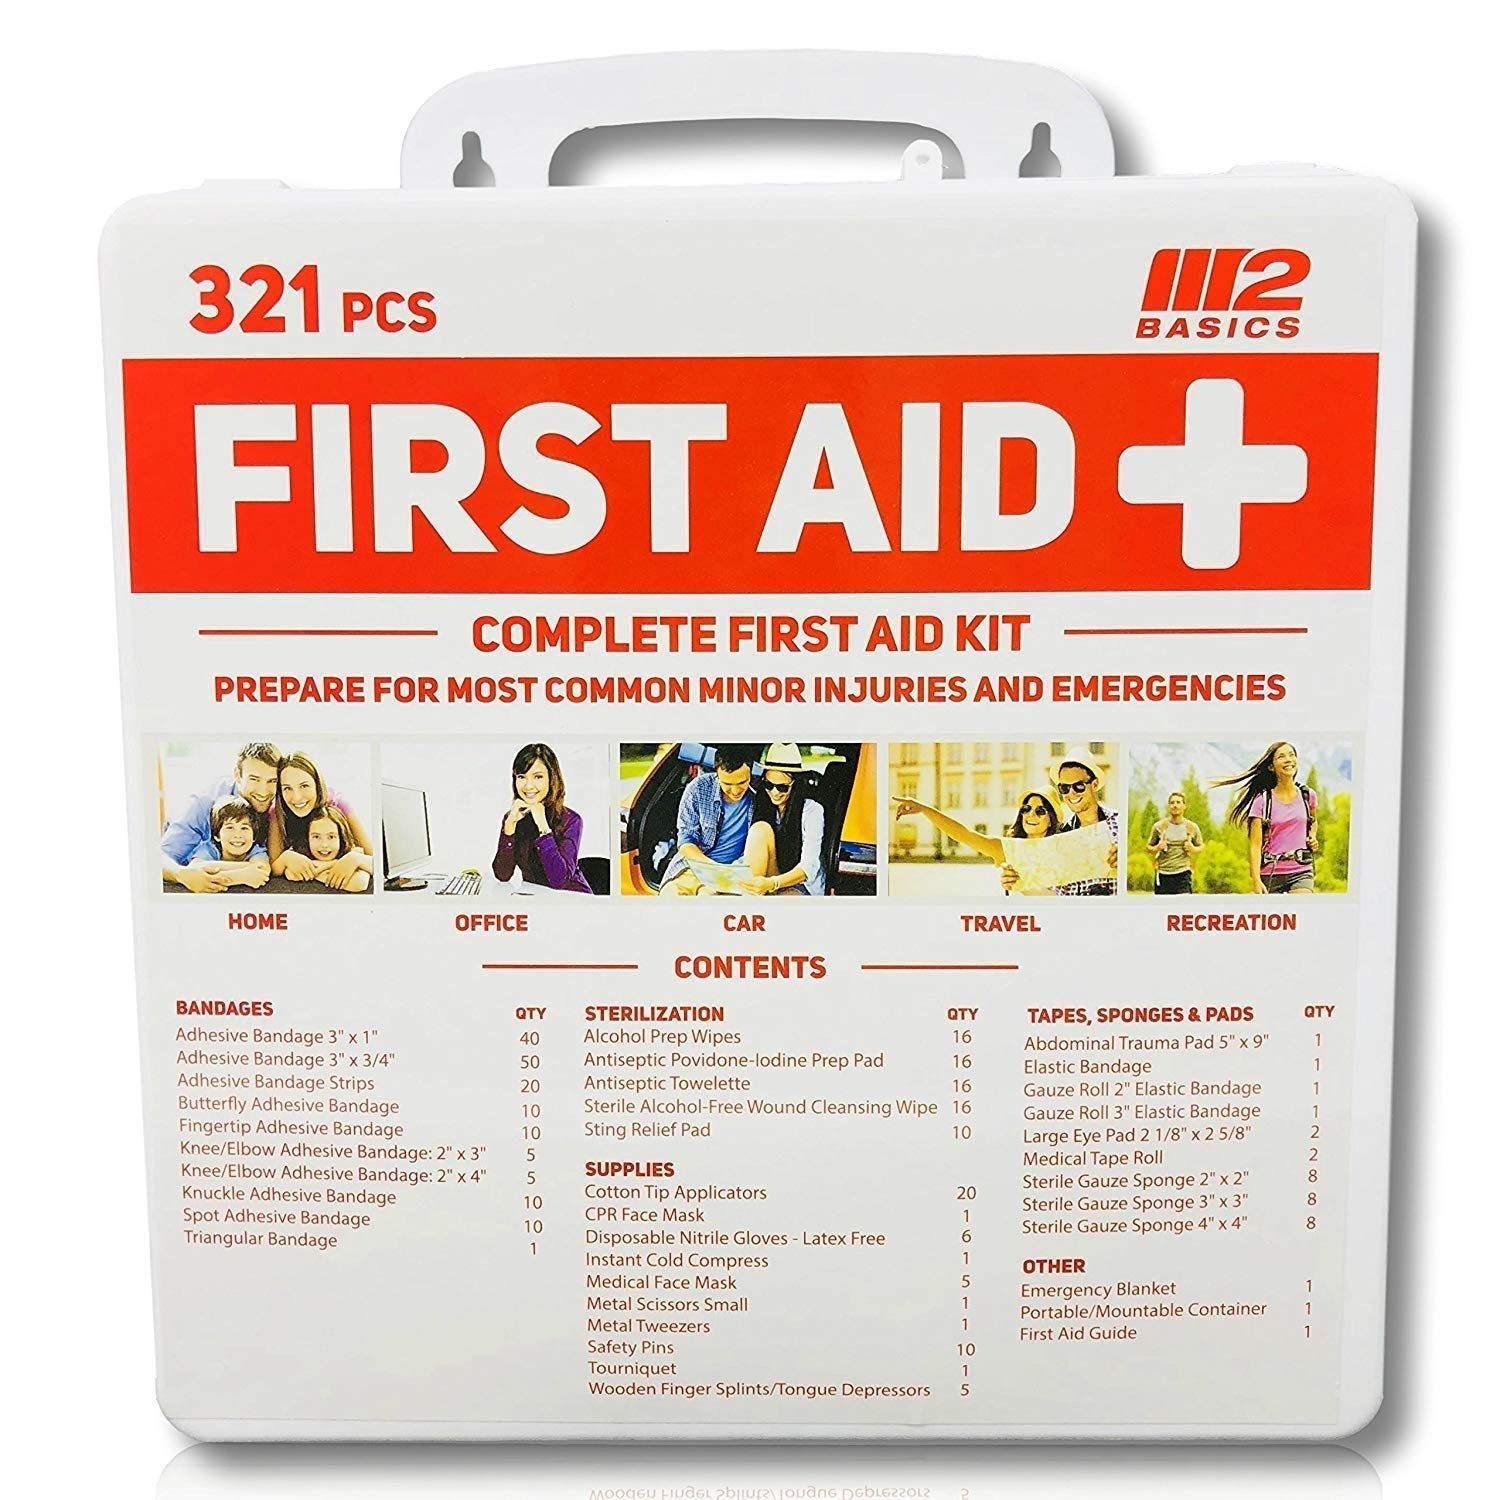 M2 Basics 321 Piece Premium First Aid Kit w/Wall Mount Hard Case | Free First Aid Guide | Emergency Medical Supply | Home, Office, Outdoors, Car, Camping, Travel, Survival, Workplace